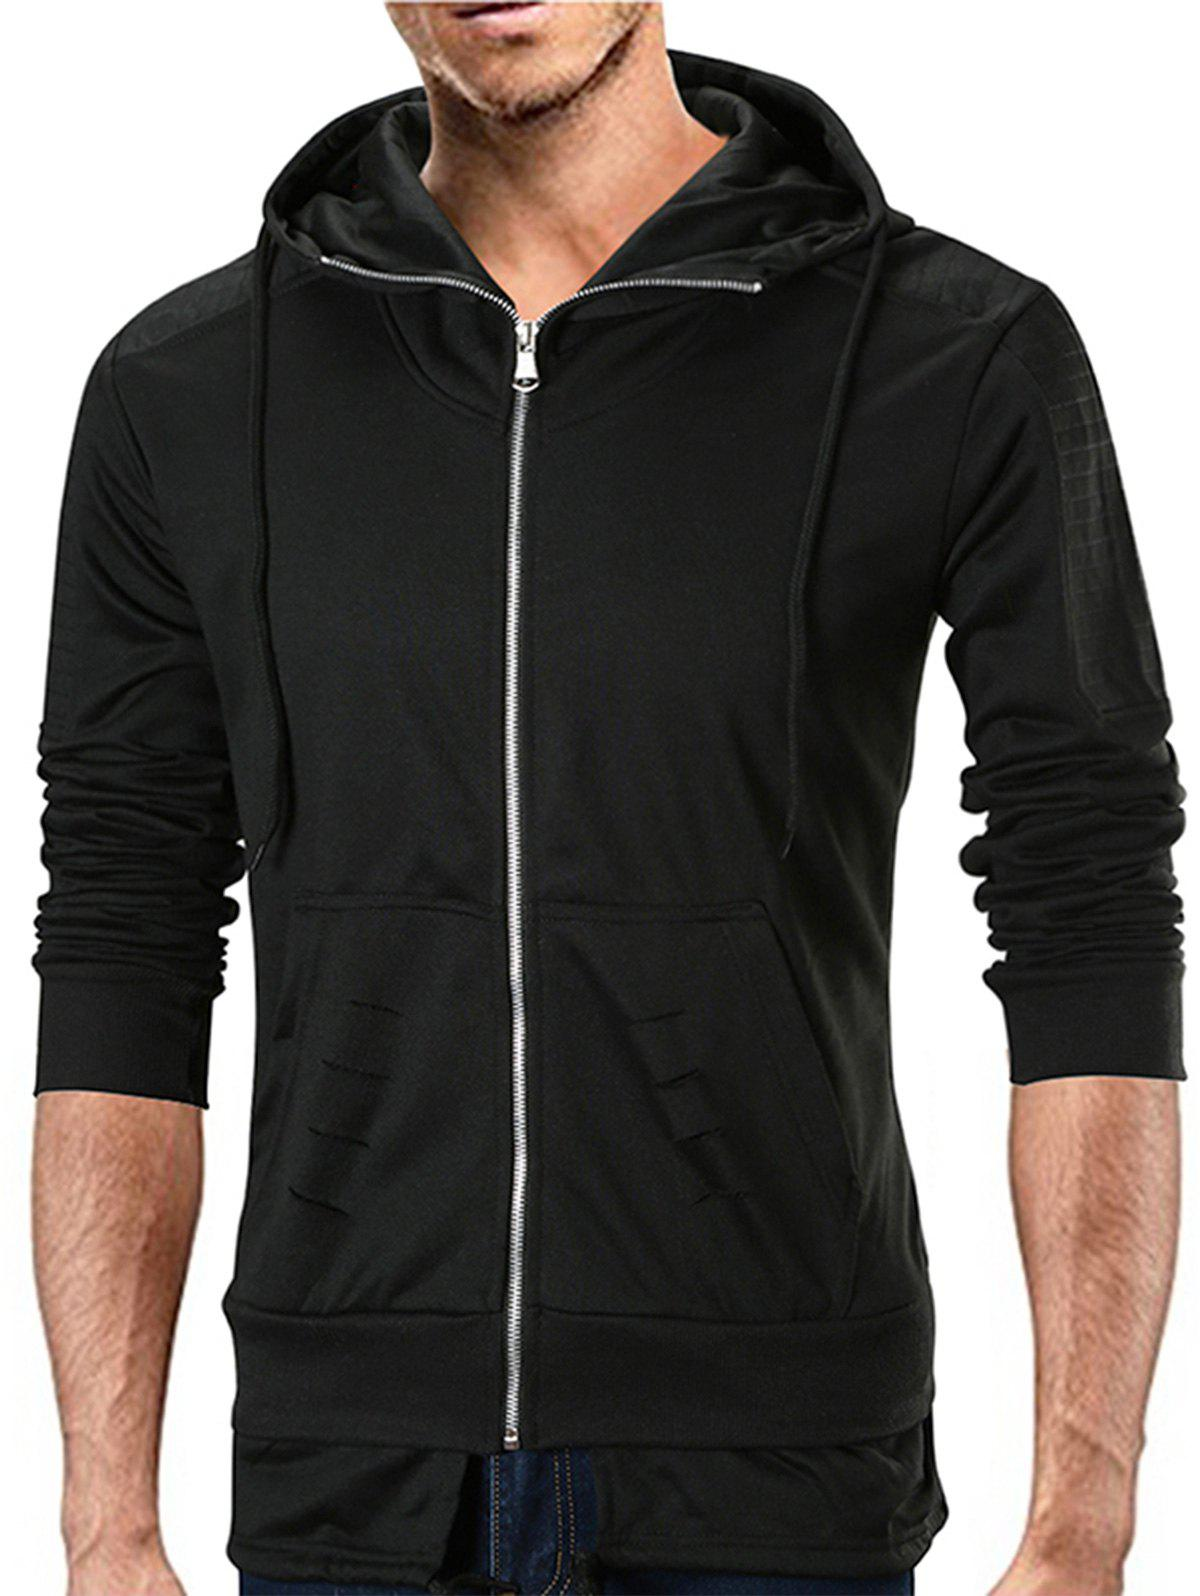 Distressed Detail Layered Hem Zip Up Hoodie - BLACK 2XL